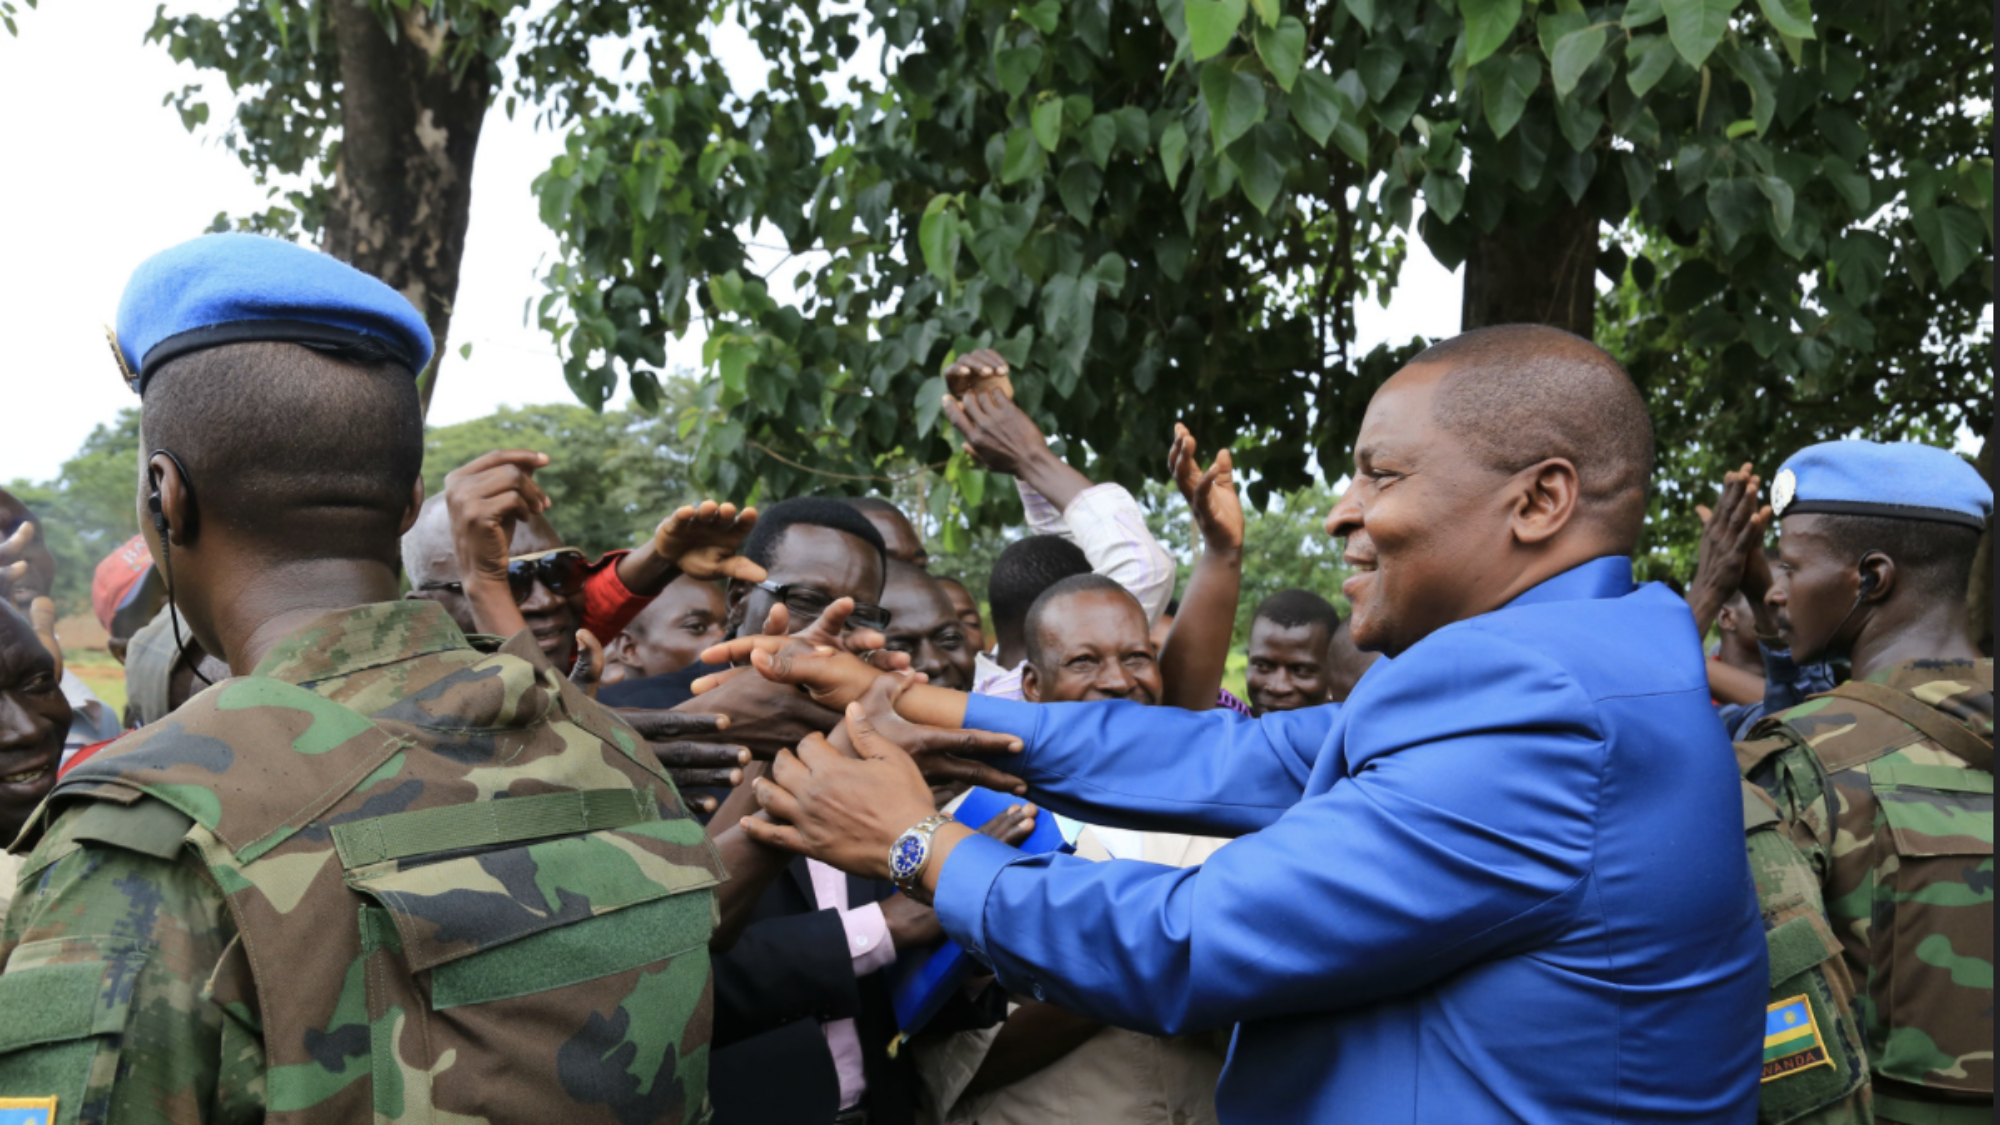 The president of the Central African Republic shakes hands with citizens alongside UN Peacekeepers.